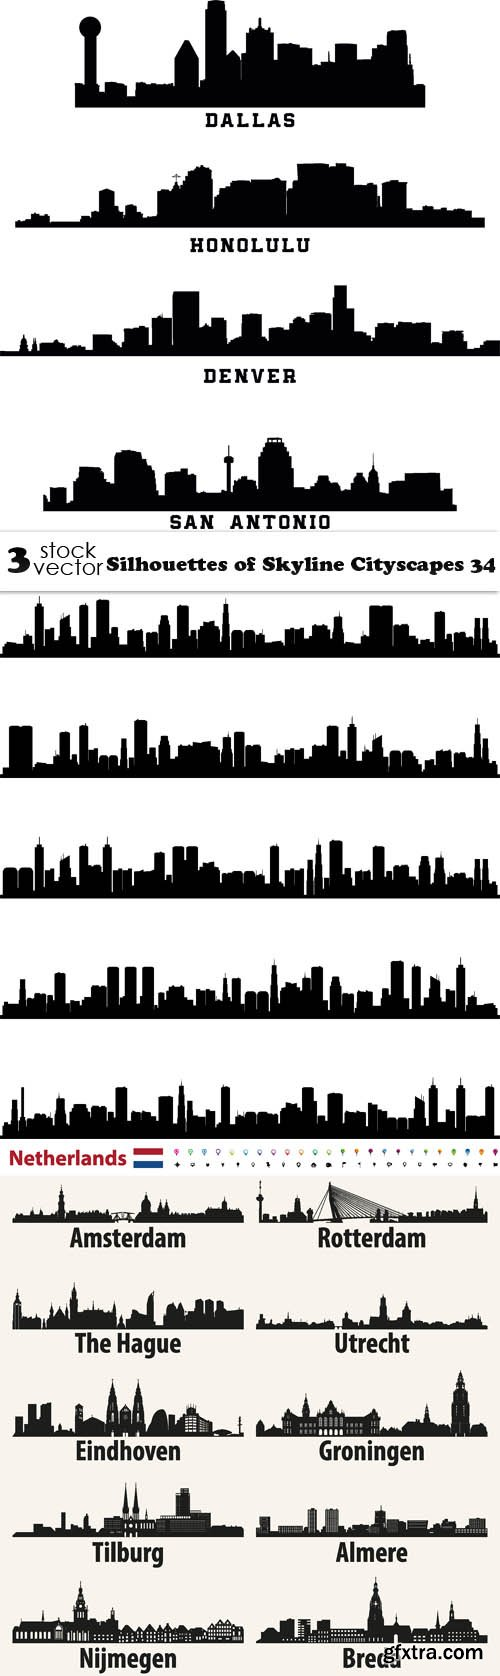 Vectors - Silhouettes of Skyline Cityscapes 34